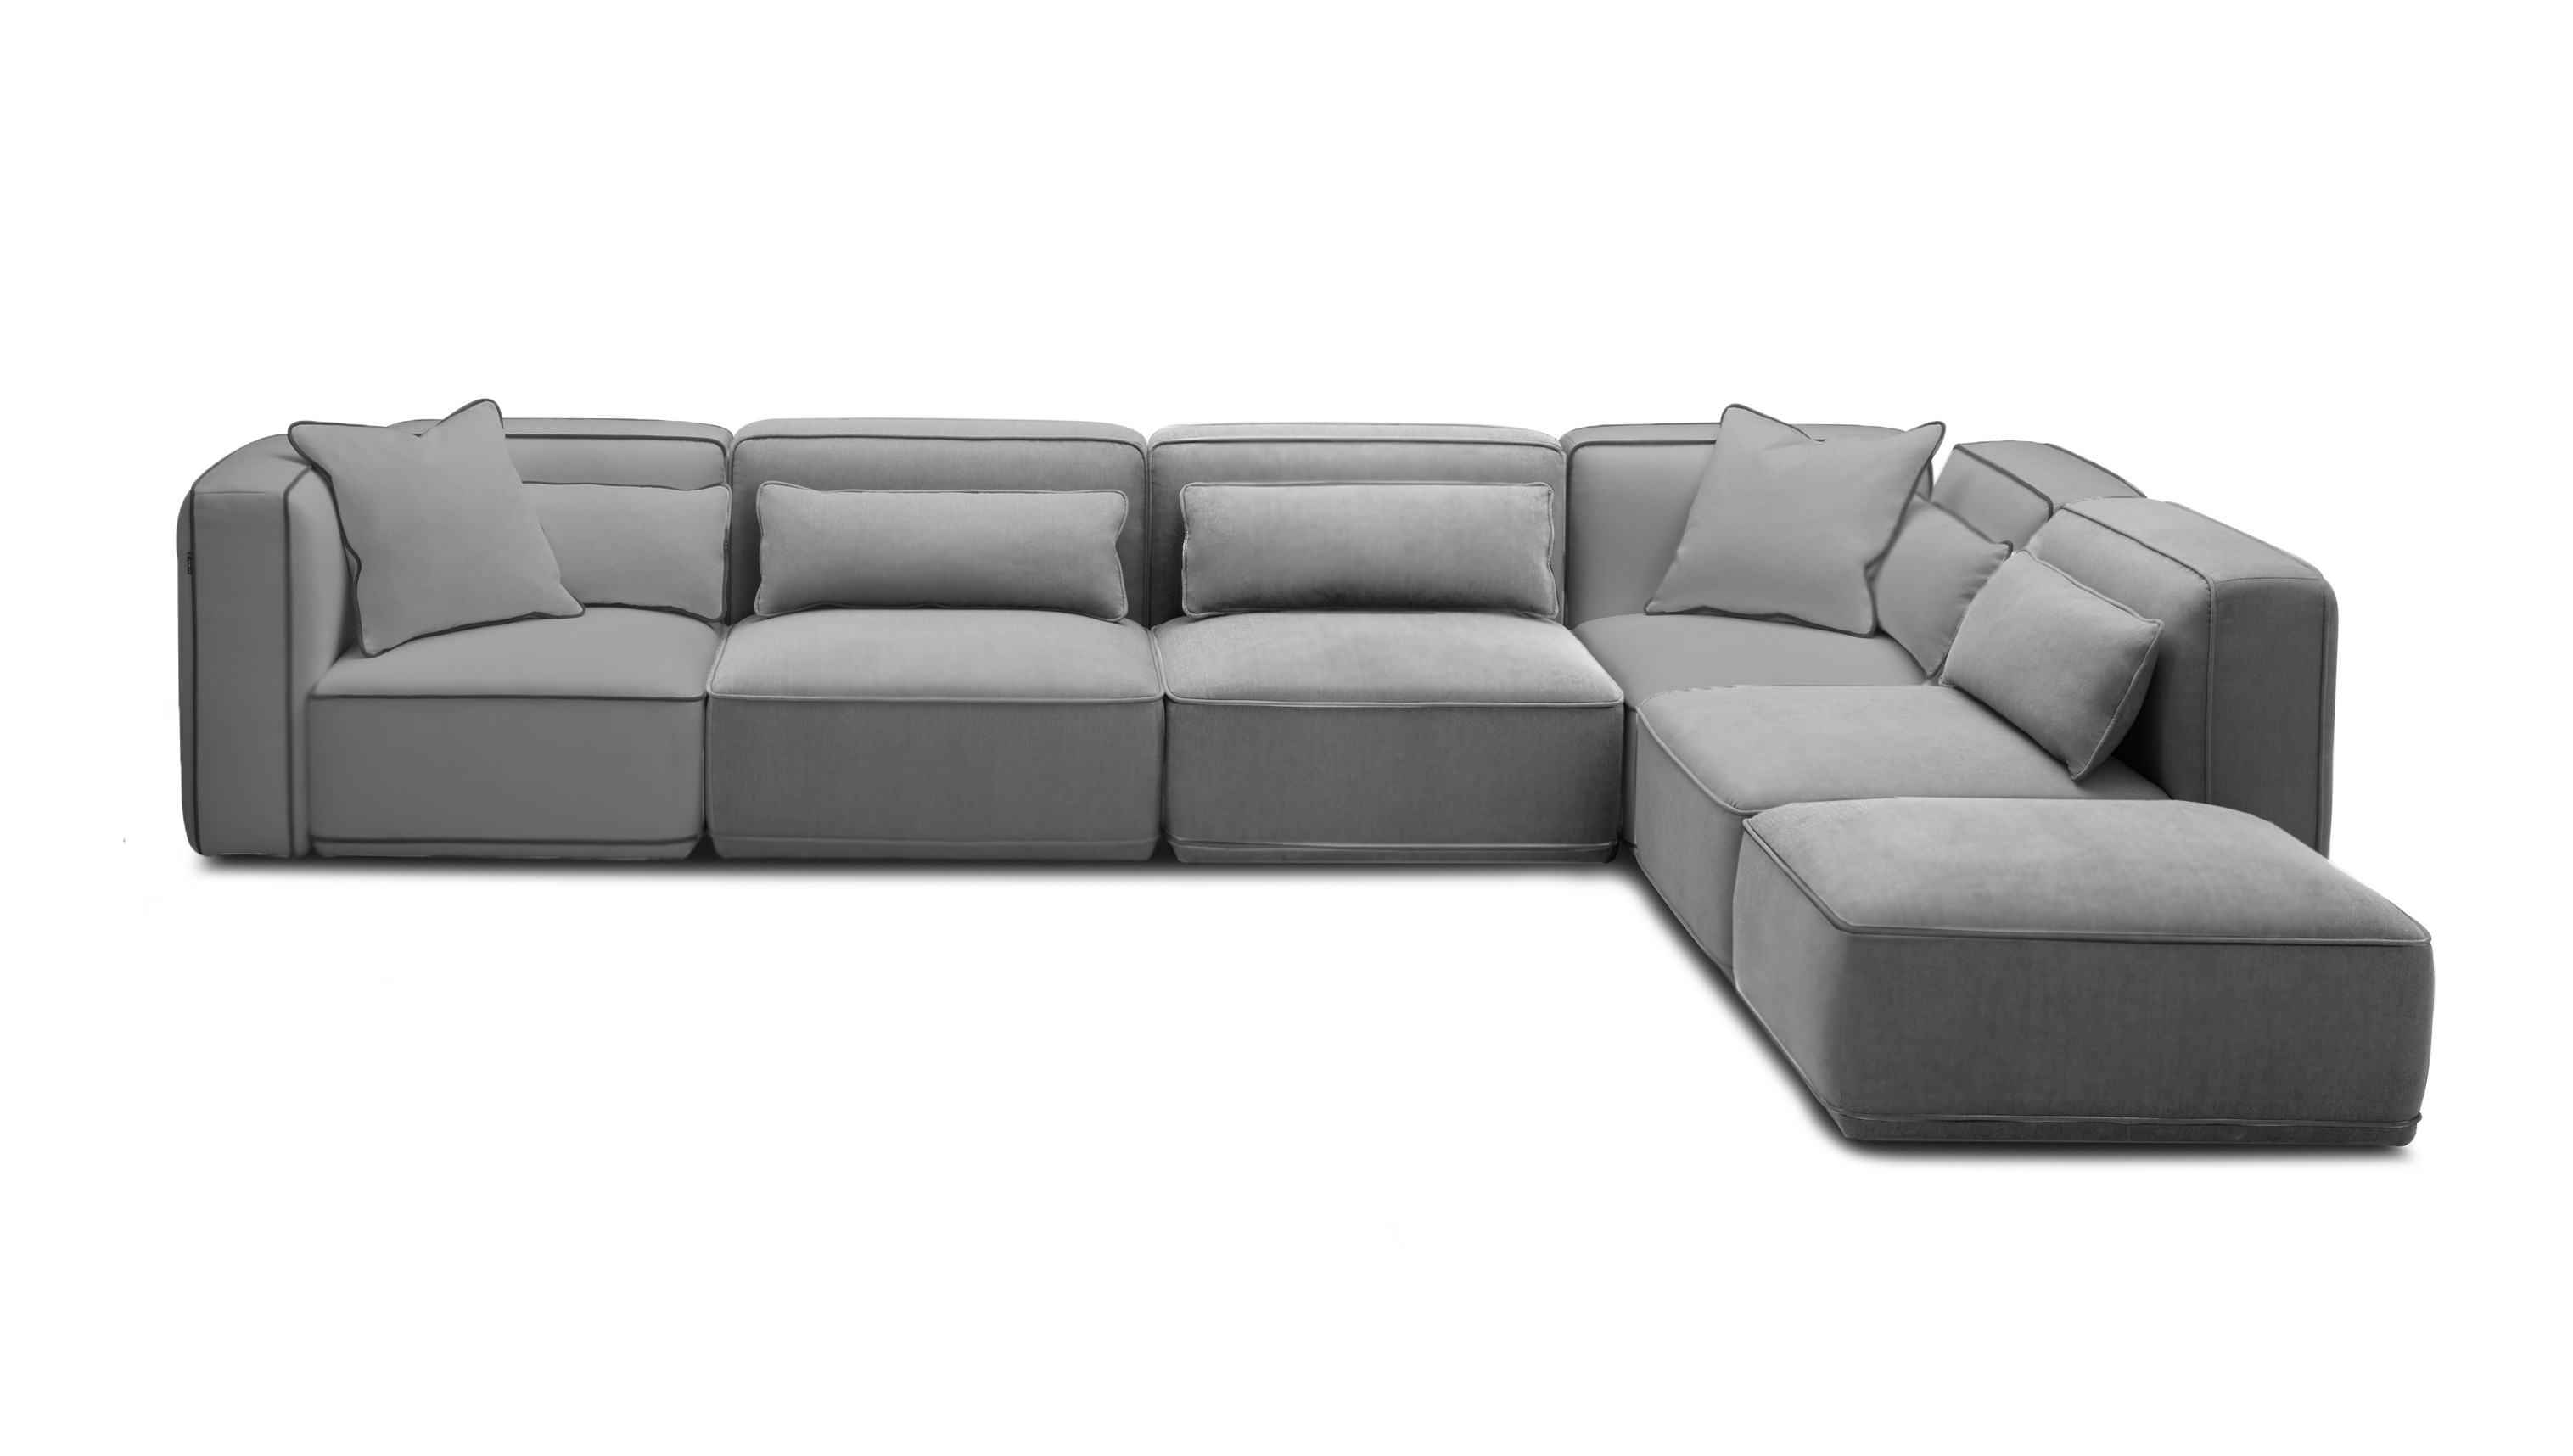 Kijiji Edmonton Sectional Sofas With 2018 Revolve Coffee Tables Sectional Sofas Edmonton Kijiji Living Room (Gallery 15 of 20)